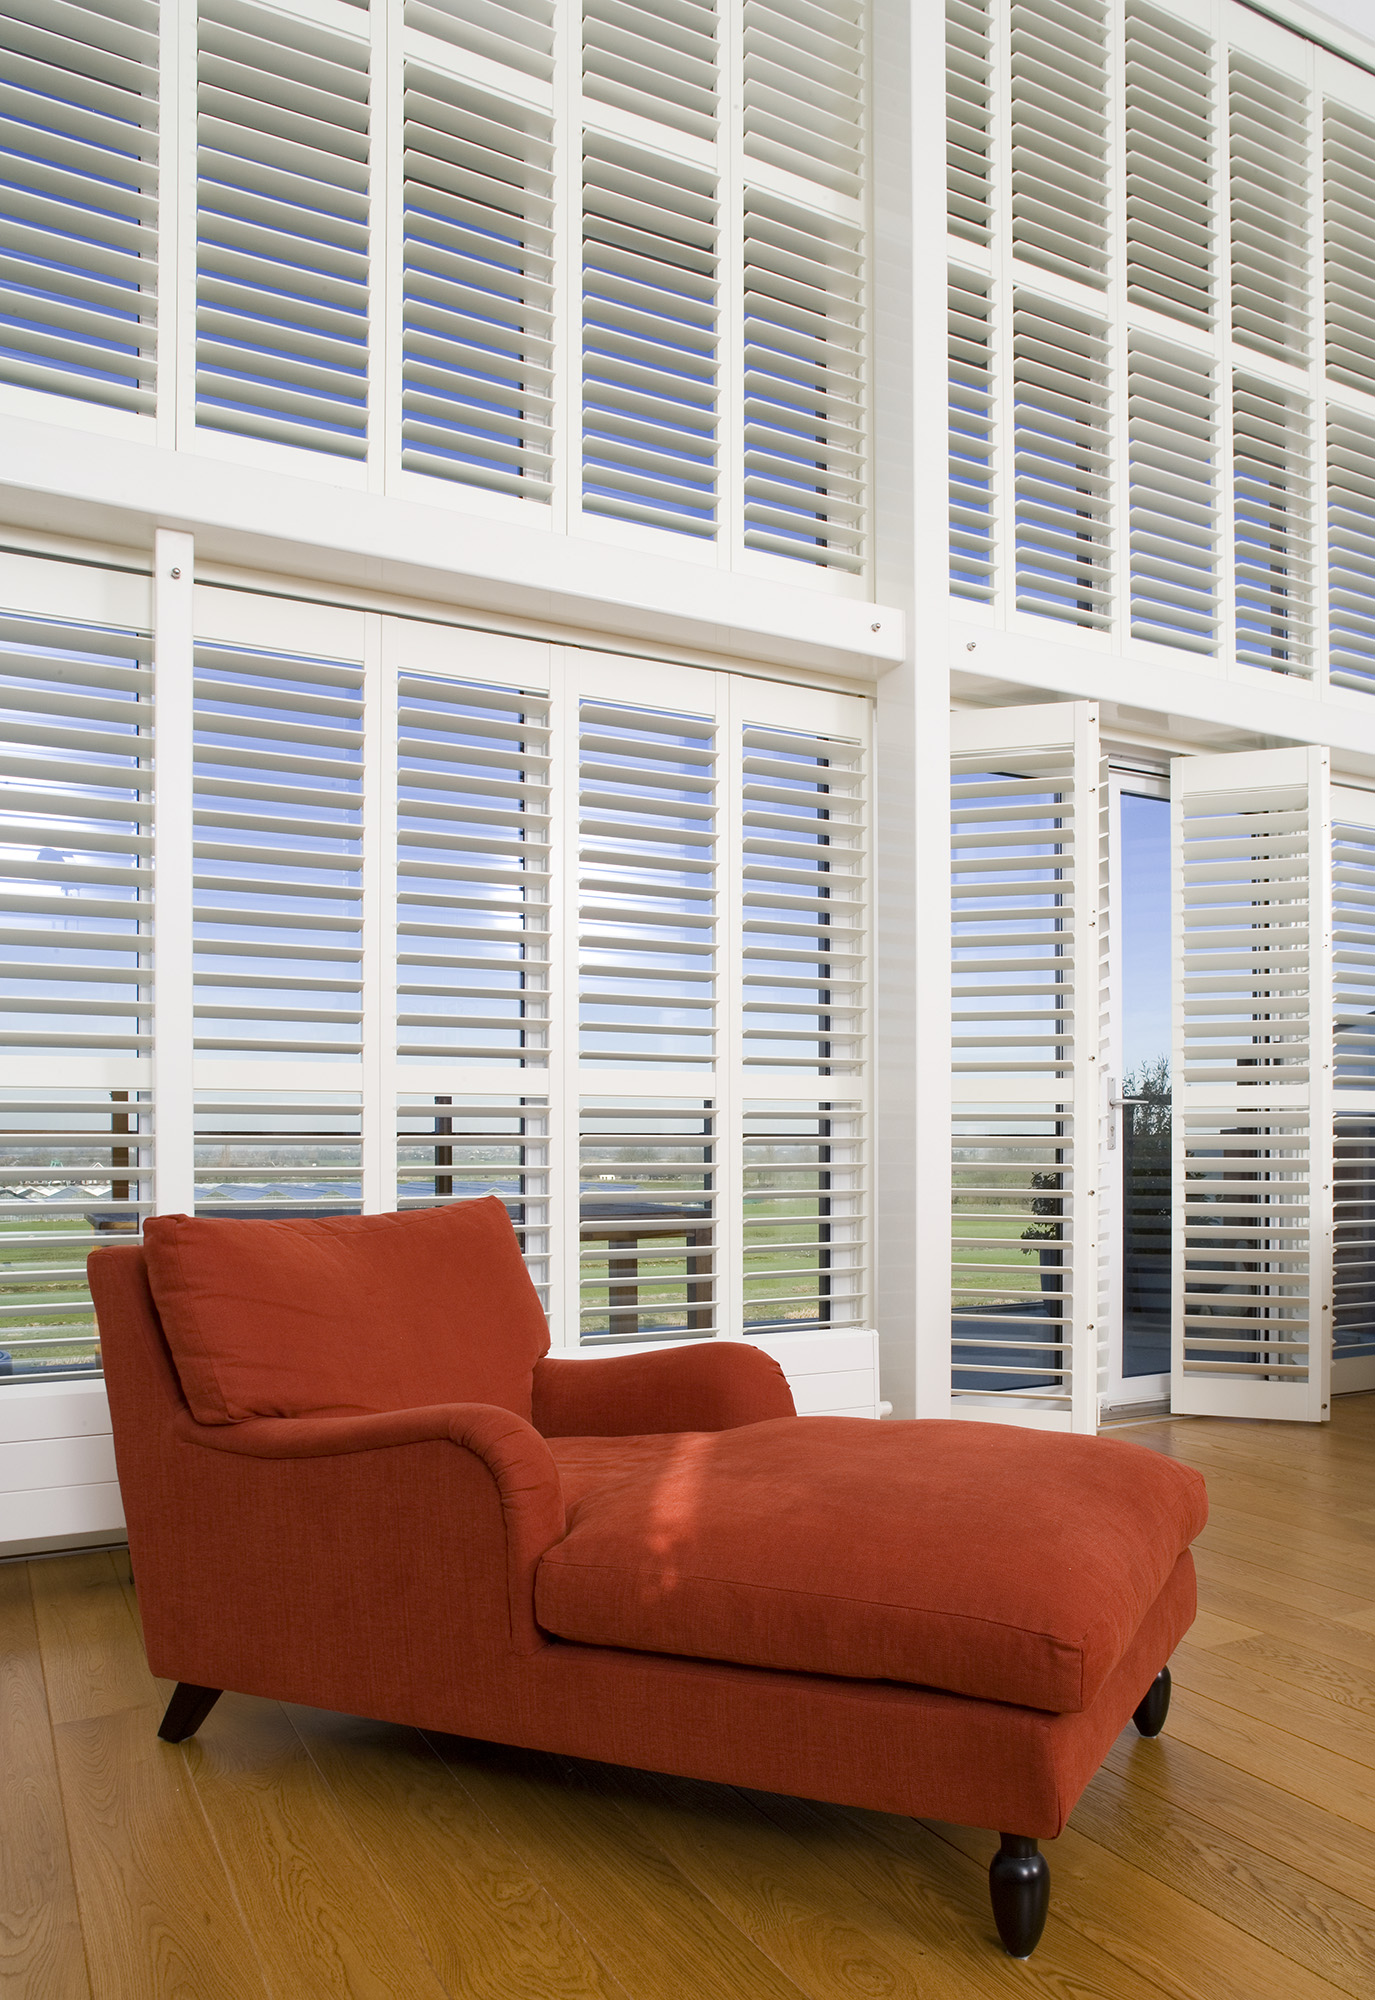 window shutters full height price